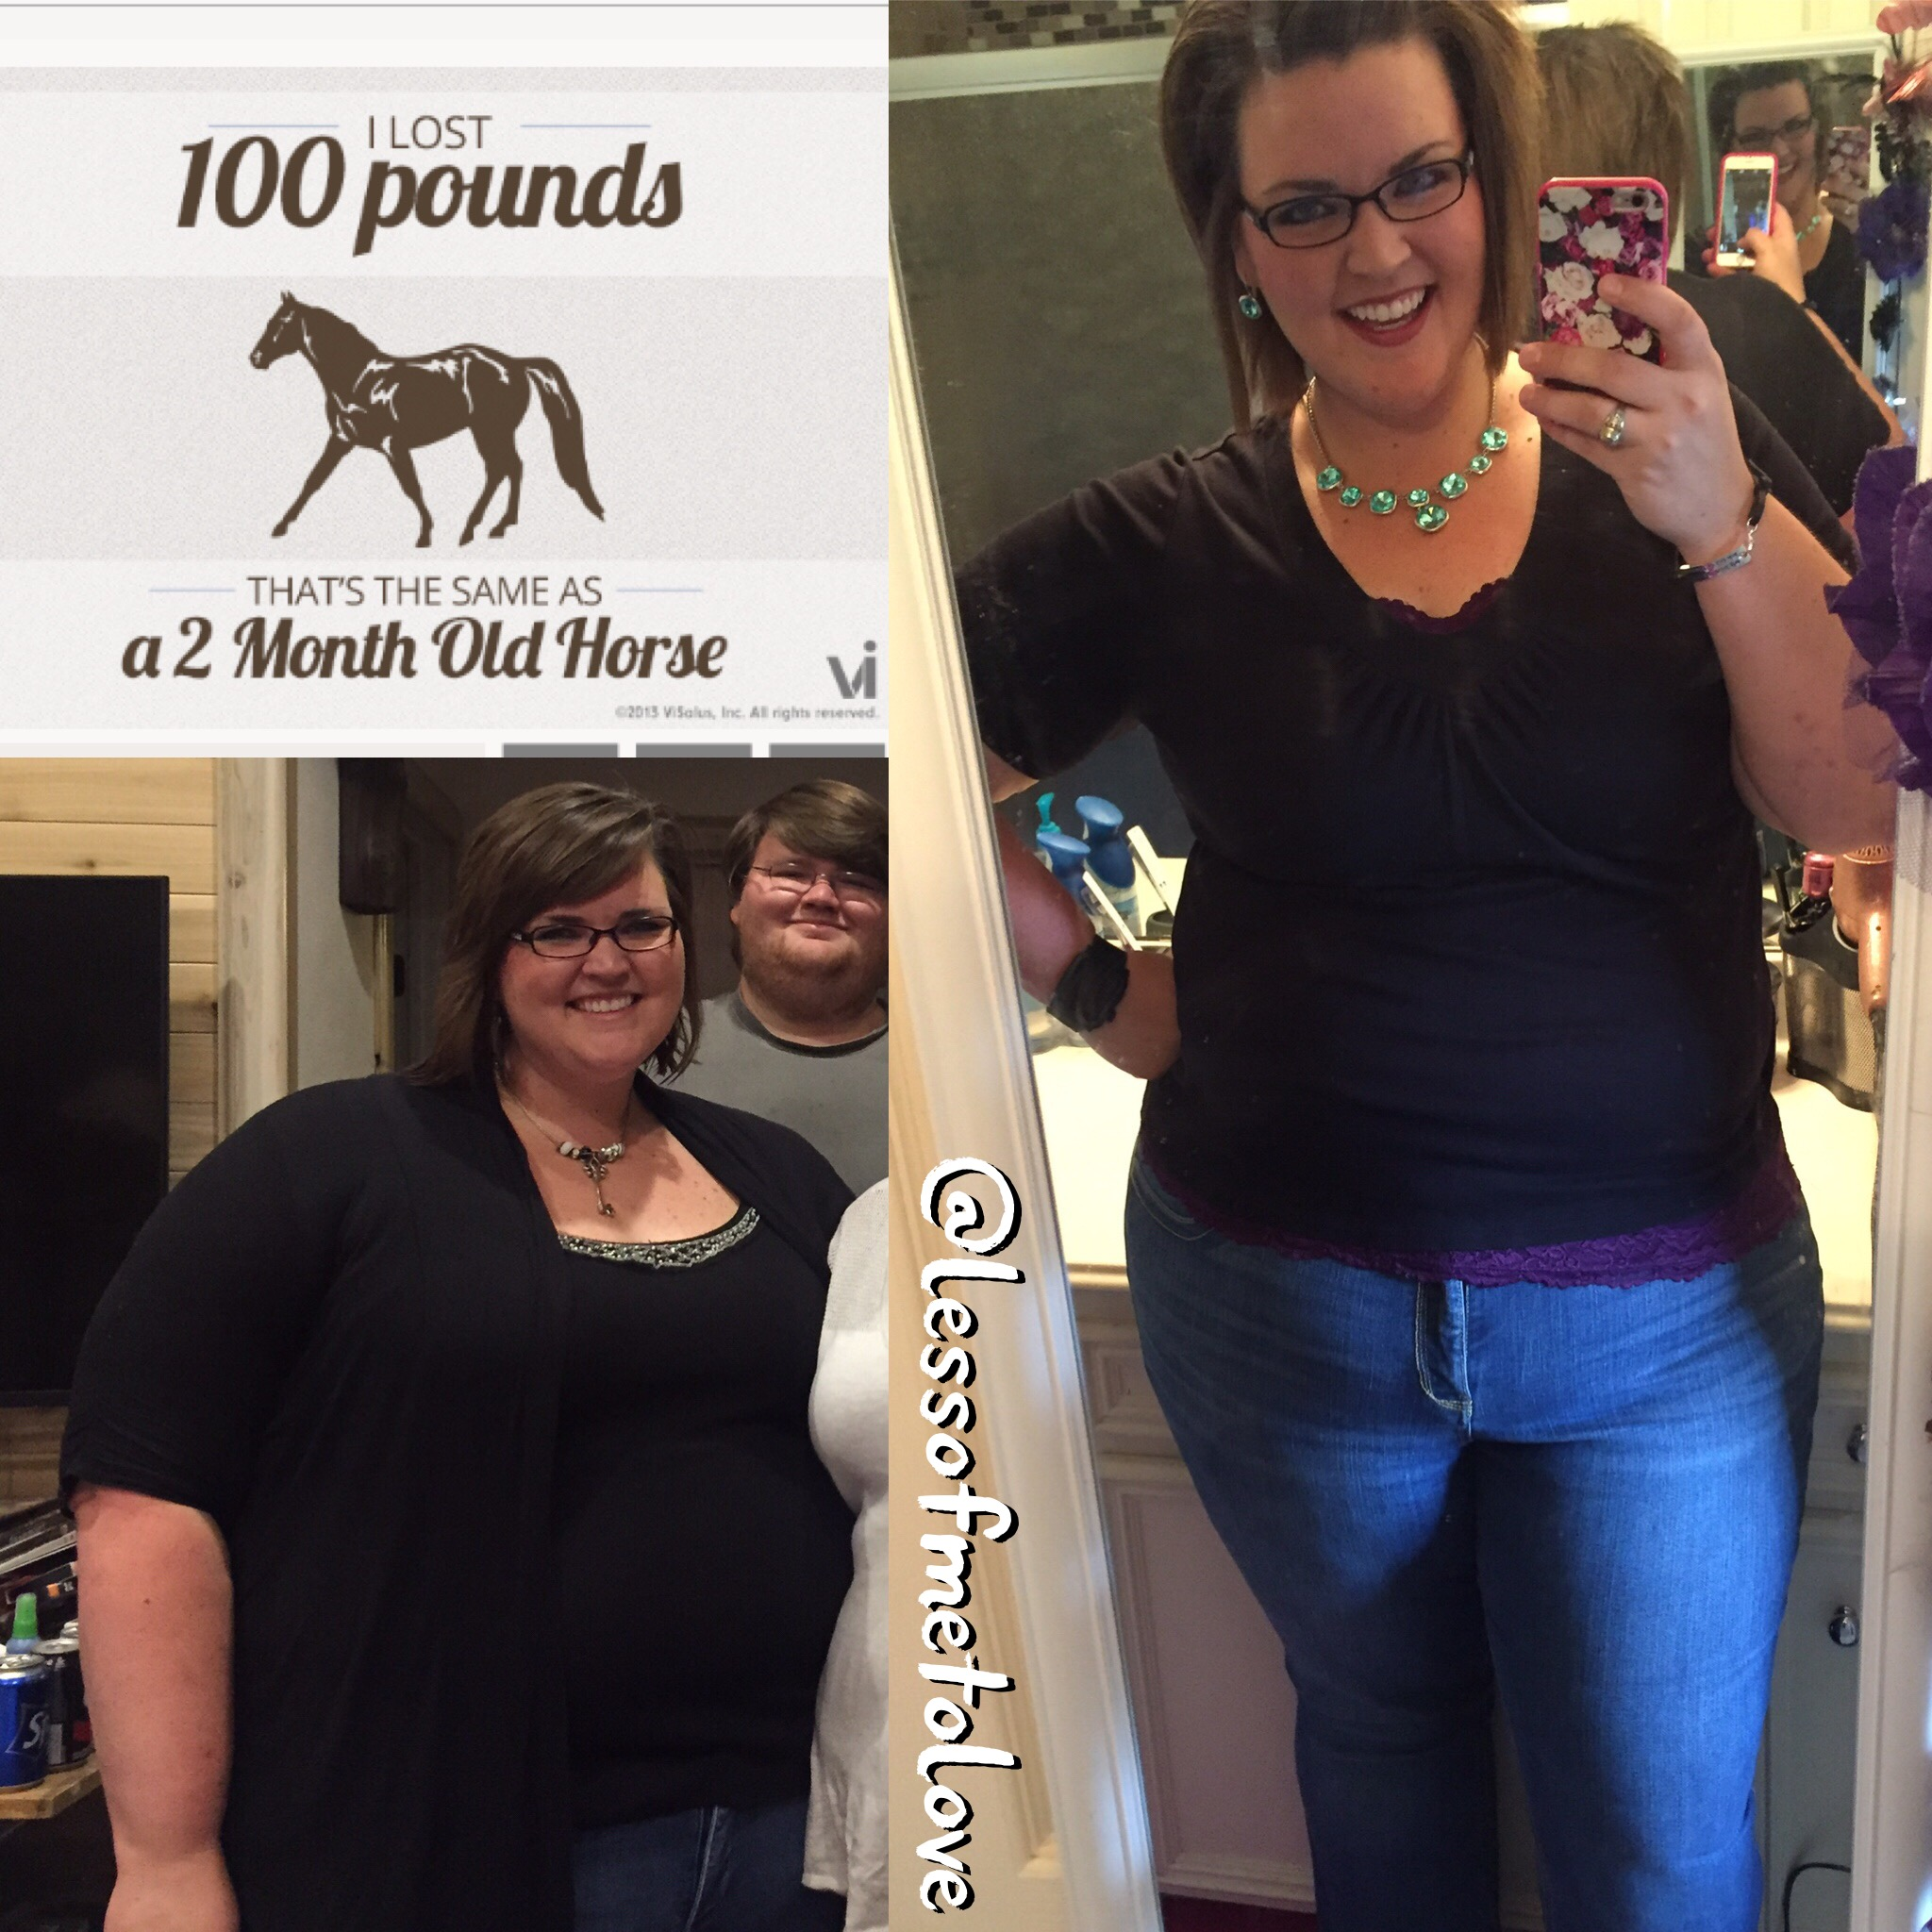 Alice lost 100 pounds! See my before and after weight loss pictures, and read amazing weight loss success stories from real women and their best weight loss diet plans and programs. Motivation to lose weight with walking and inspiration from before and after weightloss pics and photos.